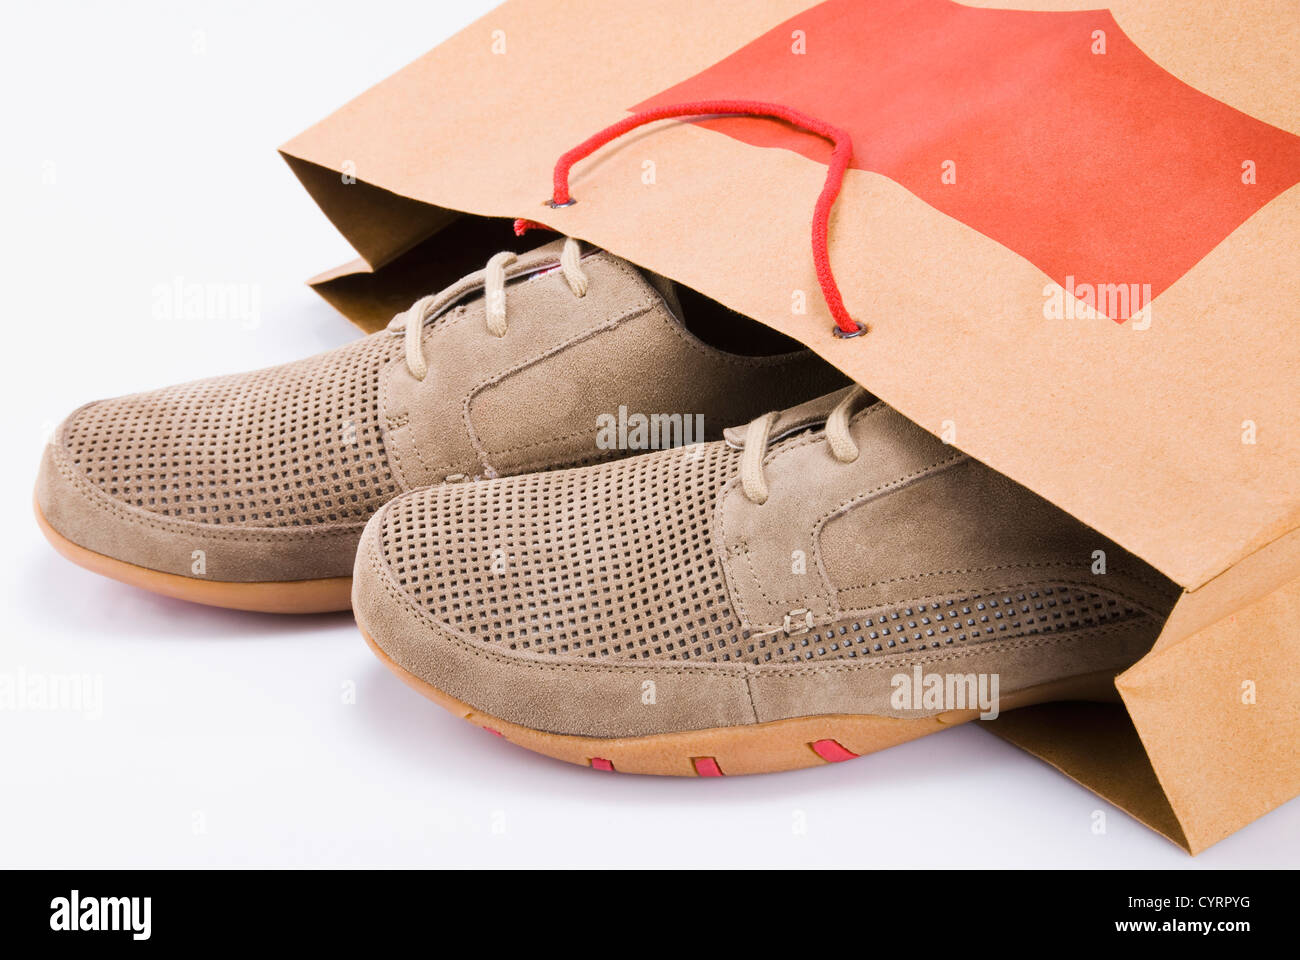 Close-up of a pair of shoes in a shopping bag - Stock Image